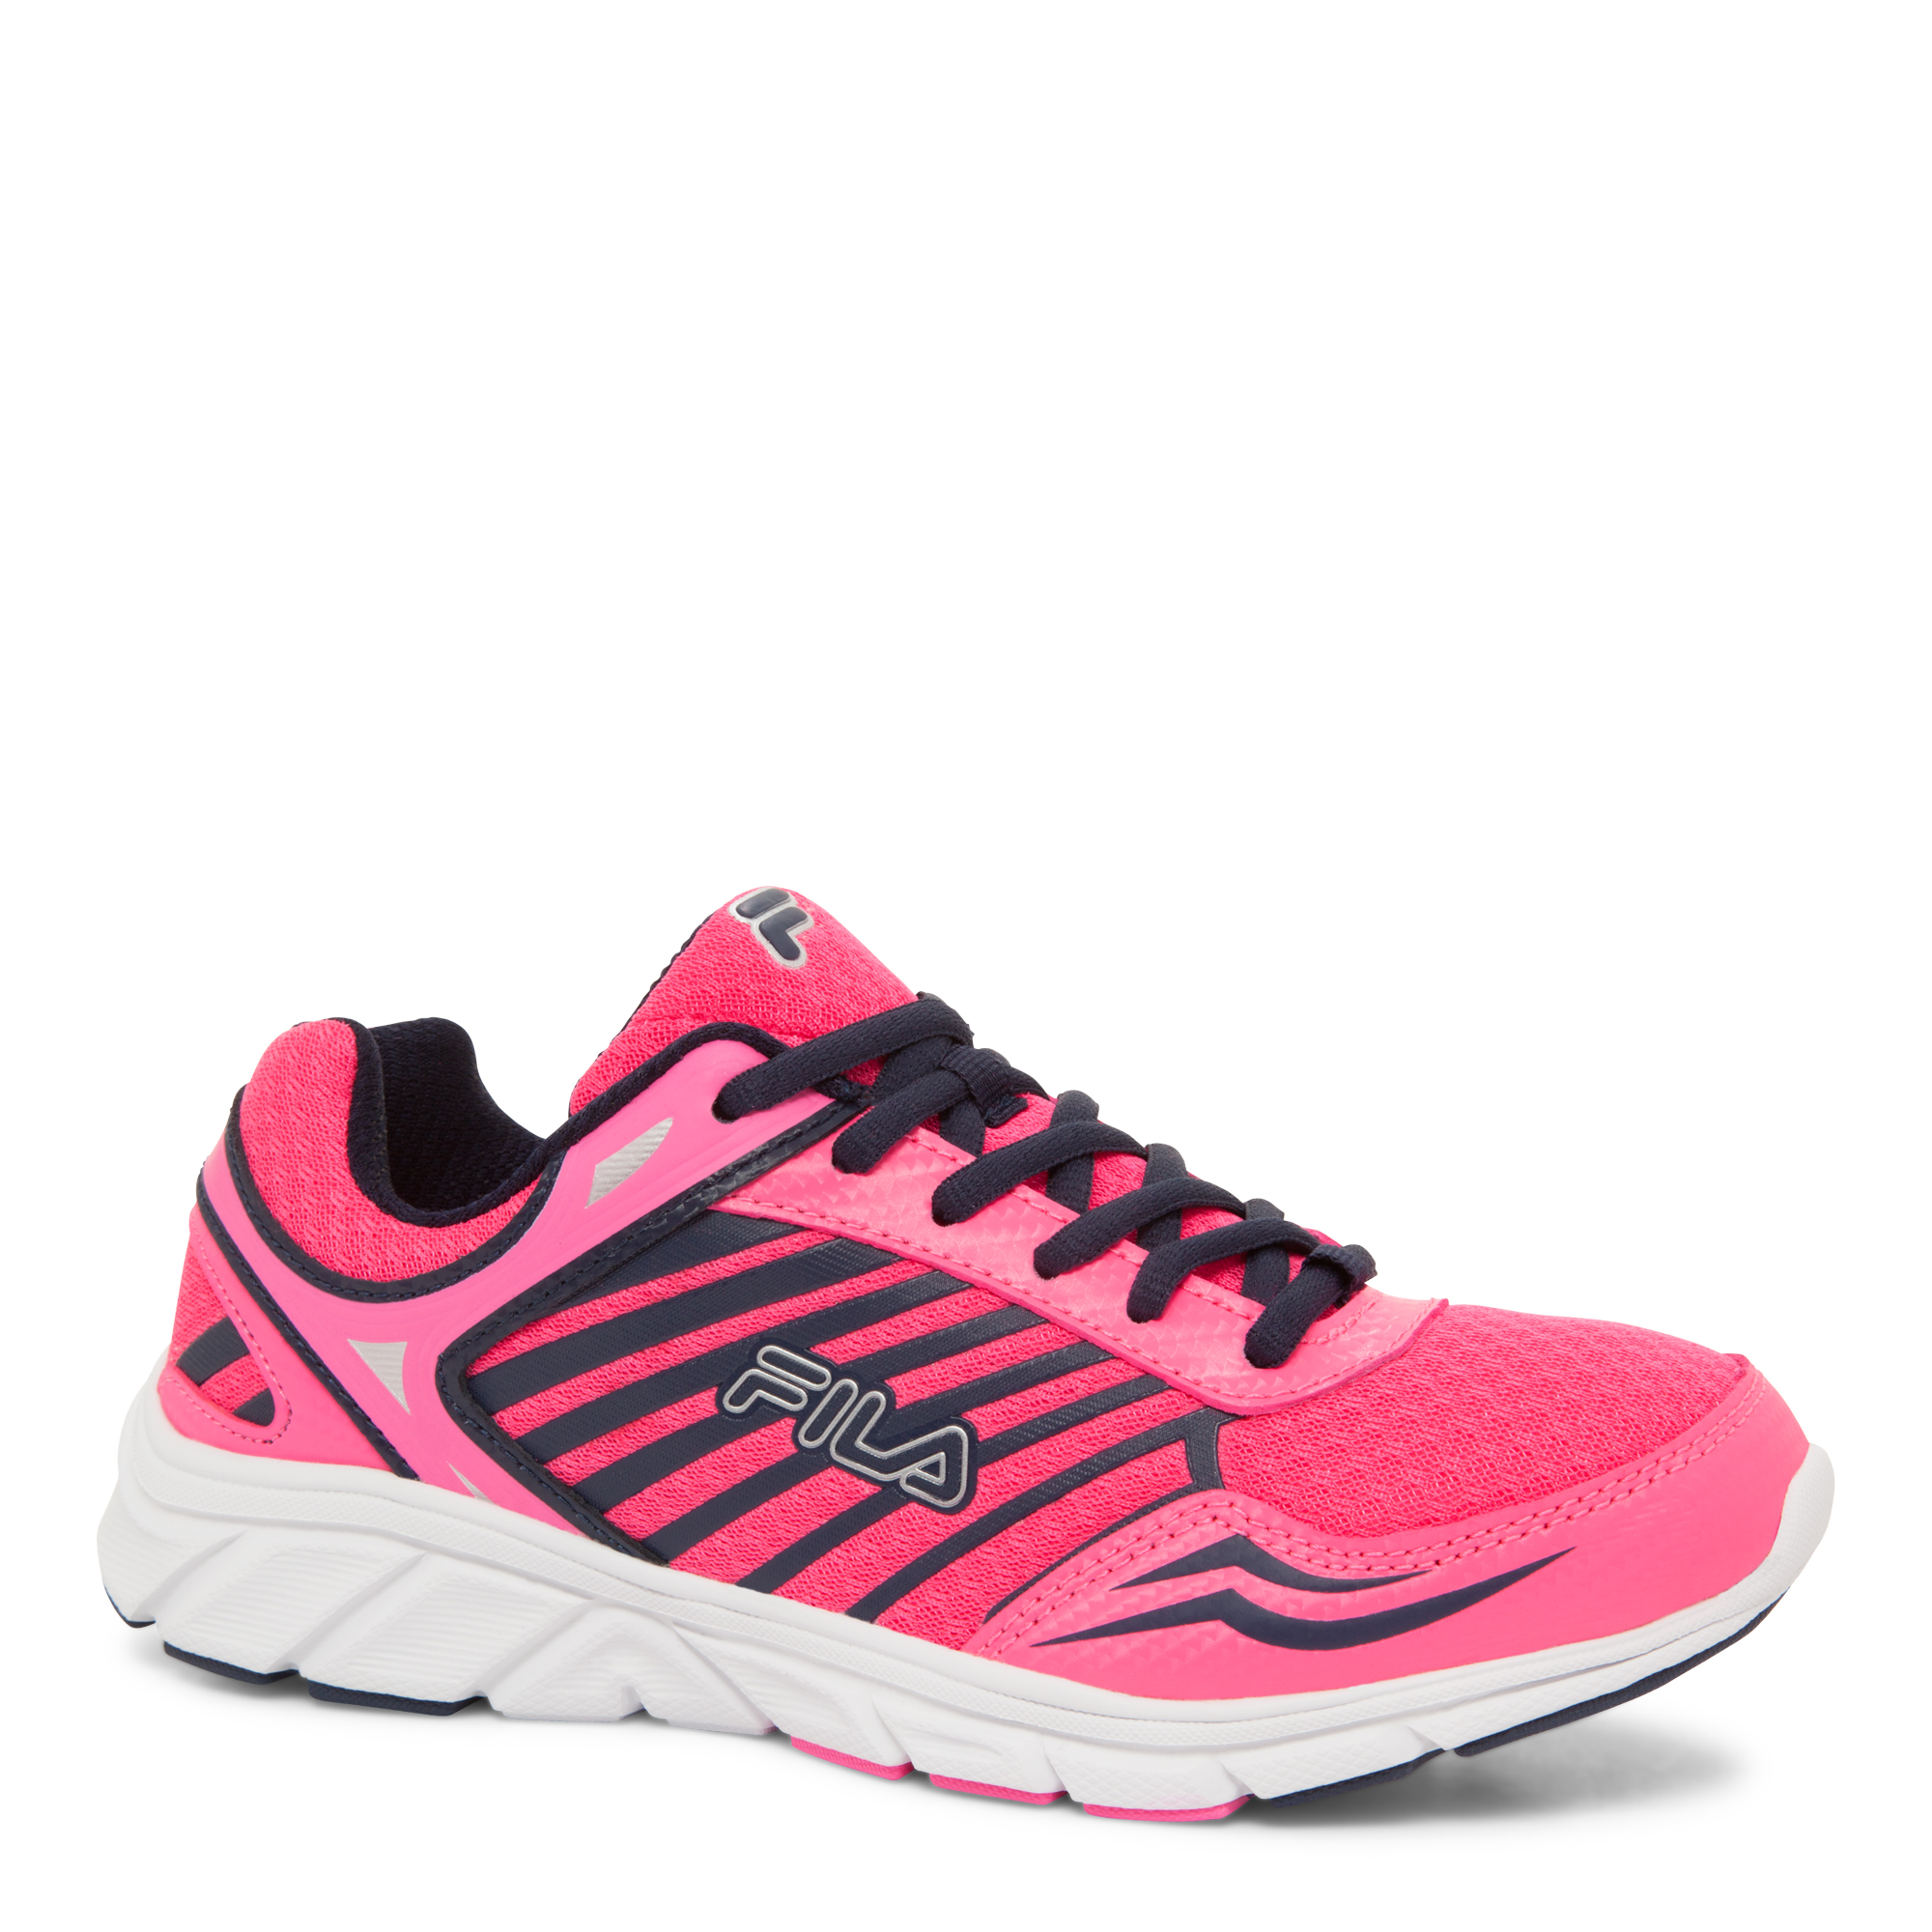 Do Nike Youth Shoes Run Small